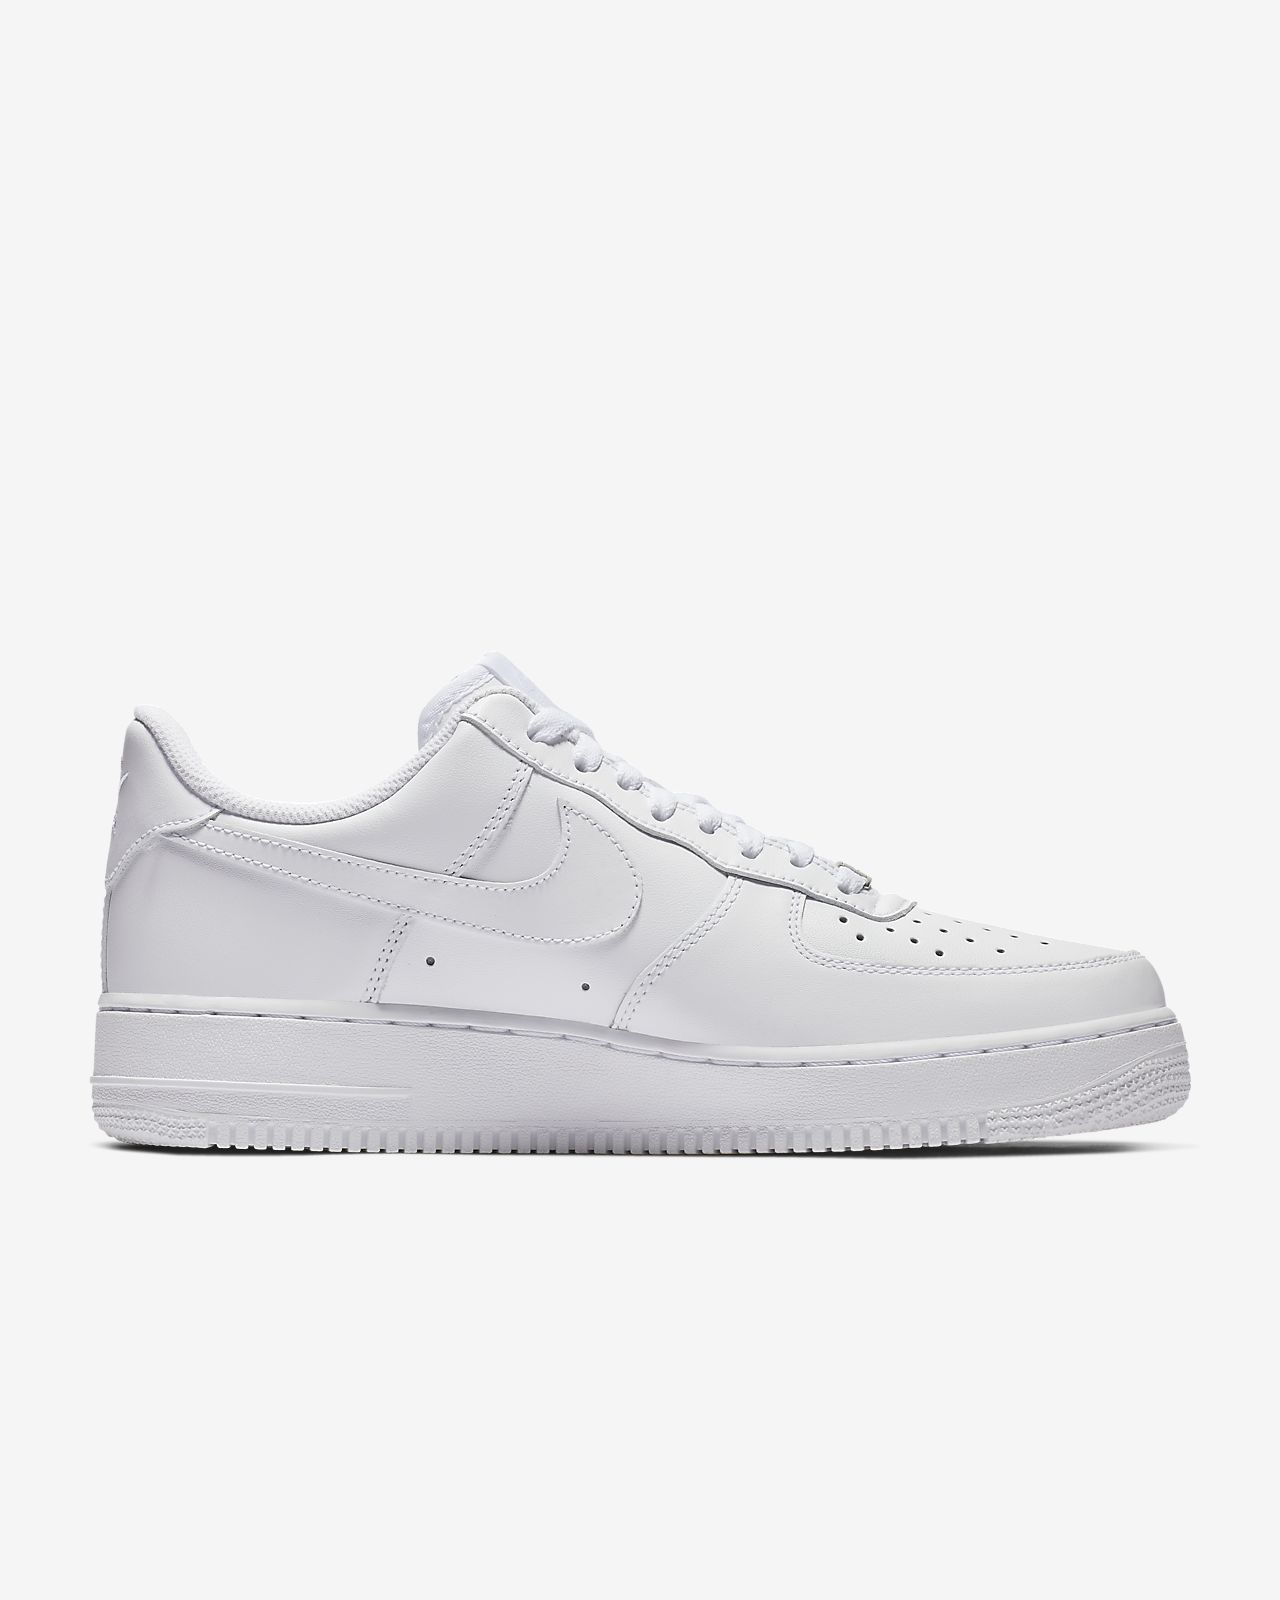 finest selection b4ca6 a305e ... Nike Air Force 1 07 Damenschuh